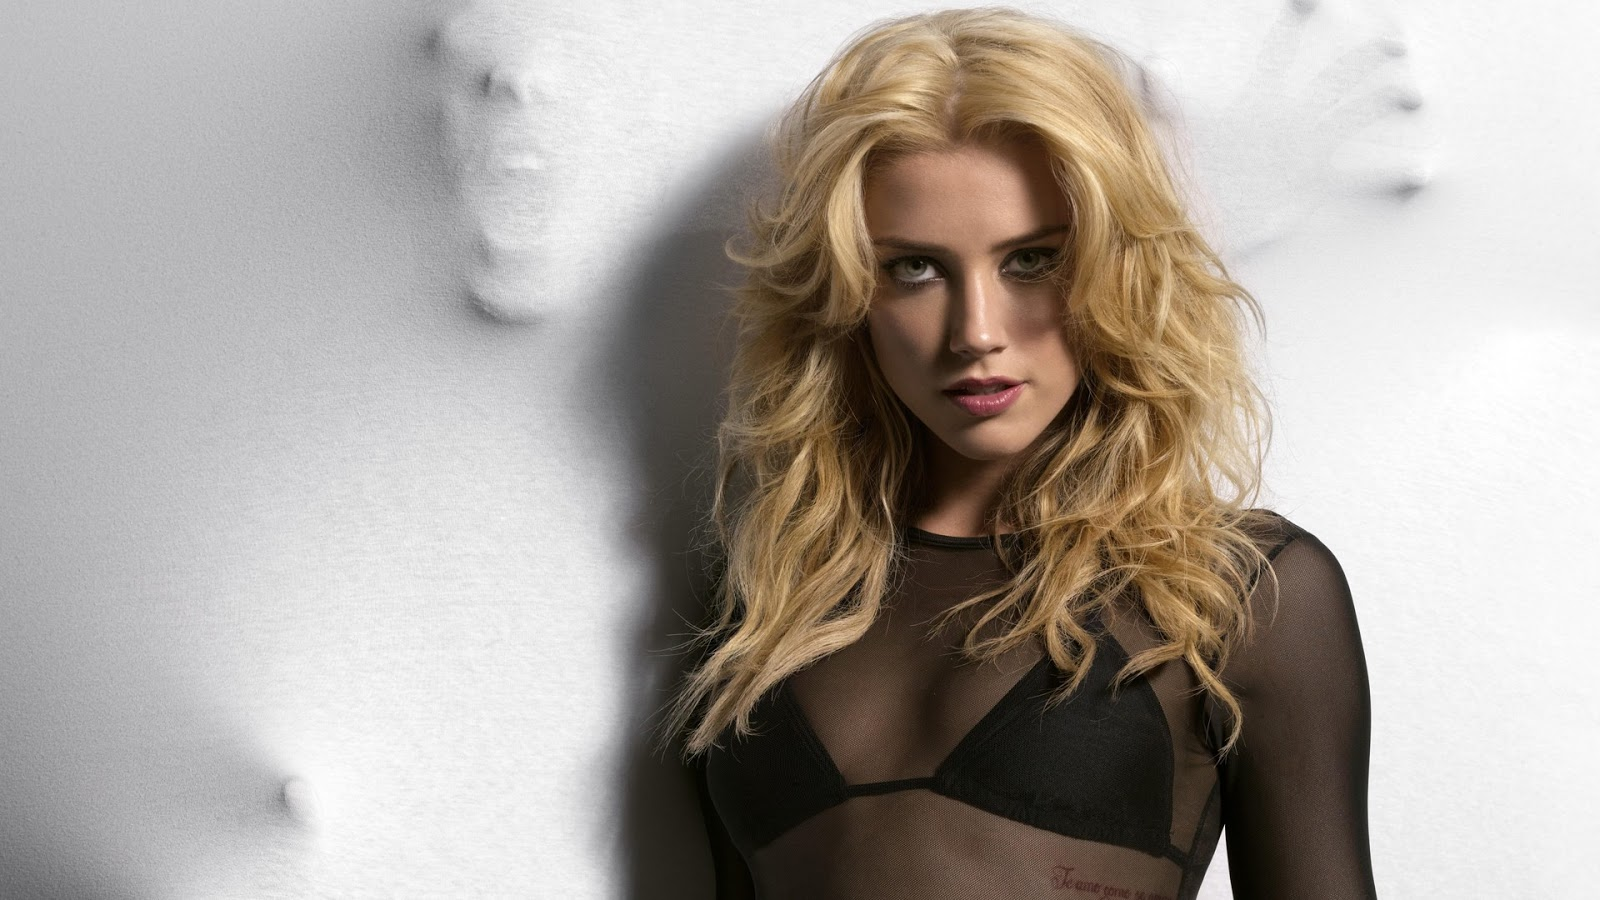 Pitsnipes Gripes: Amber Heard